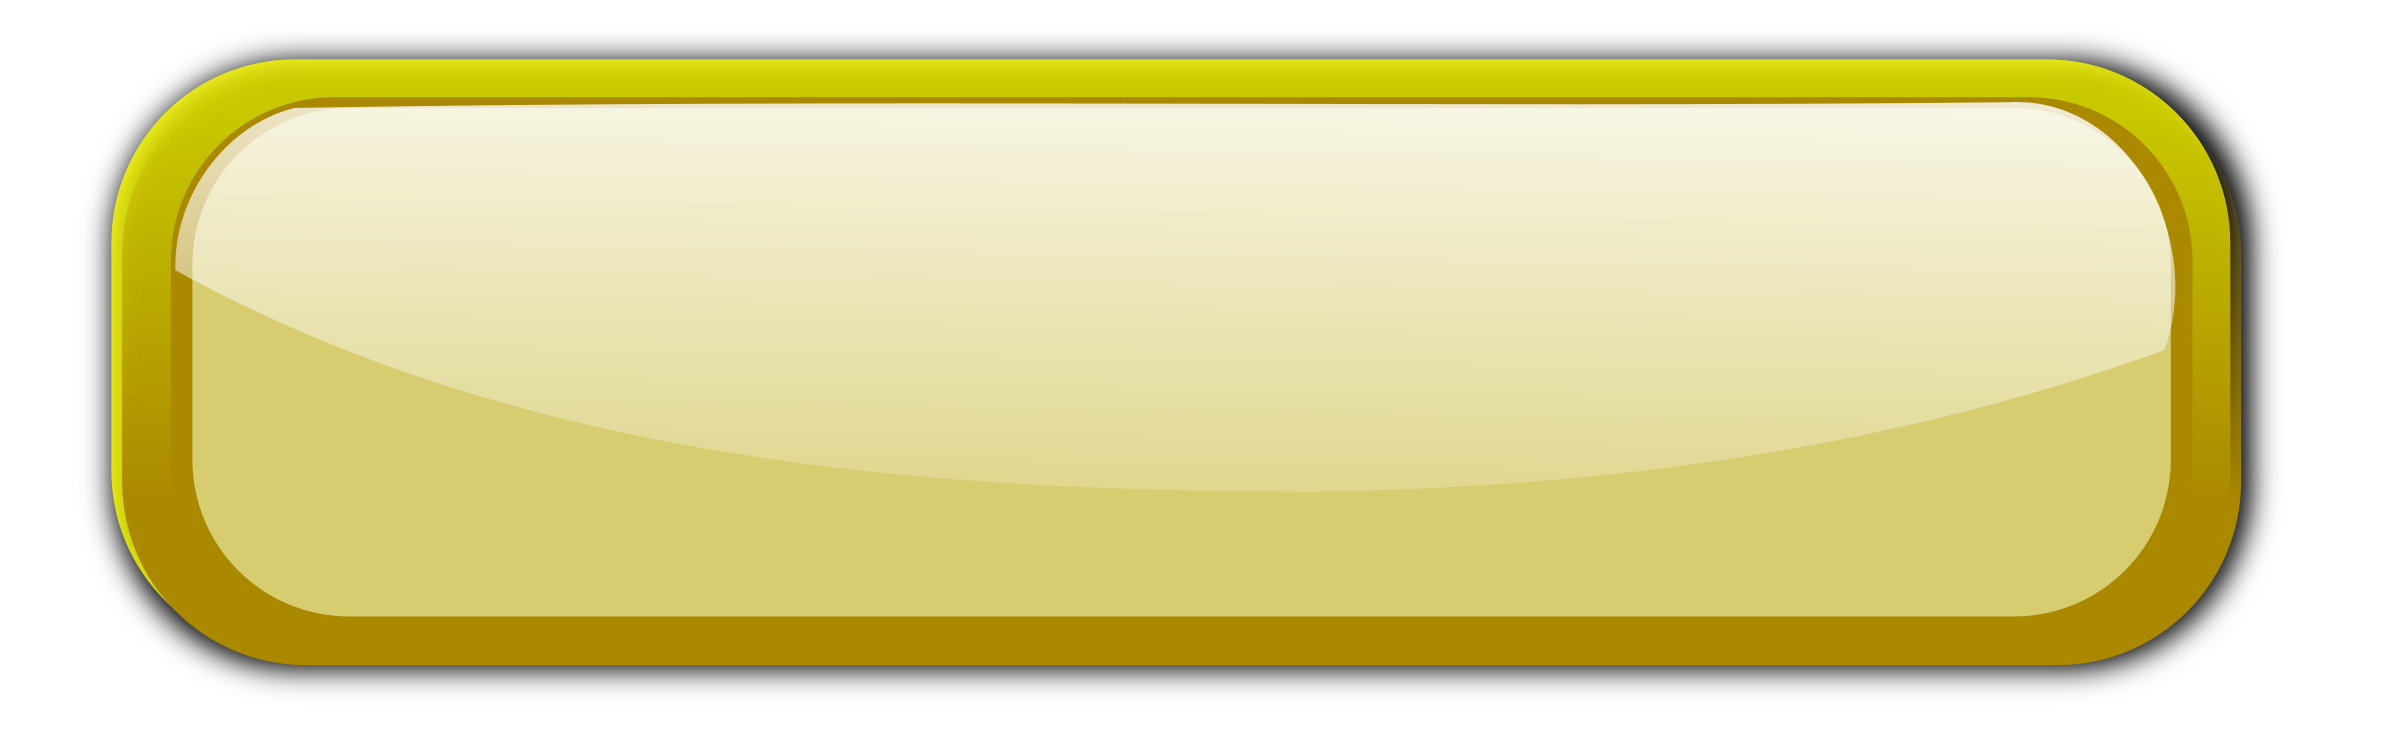 Blank web button png. Clipart gold big image